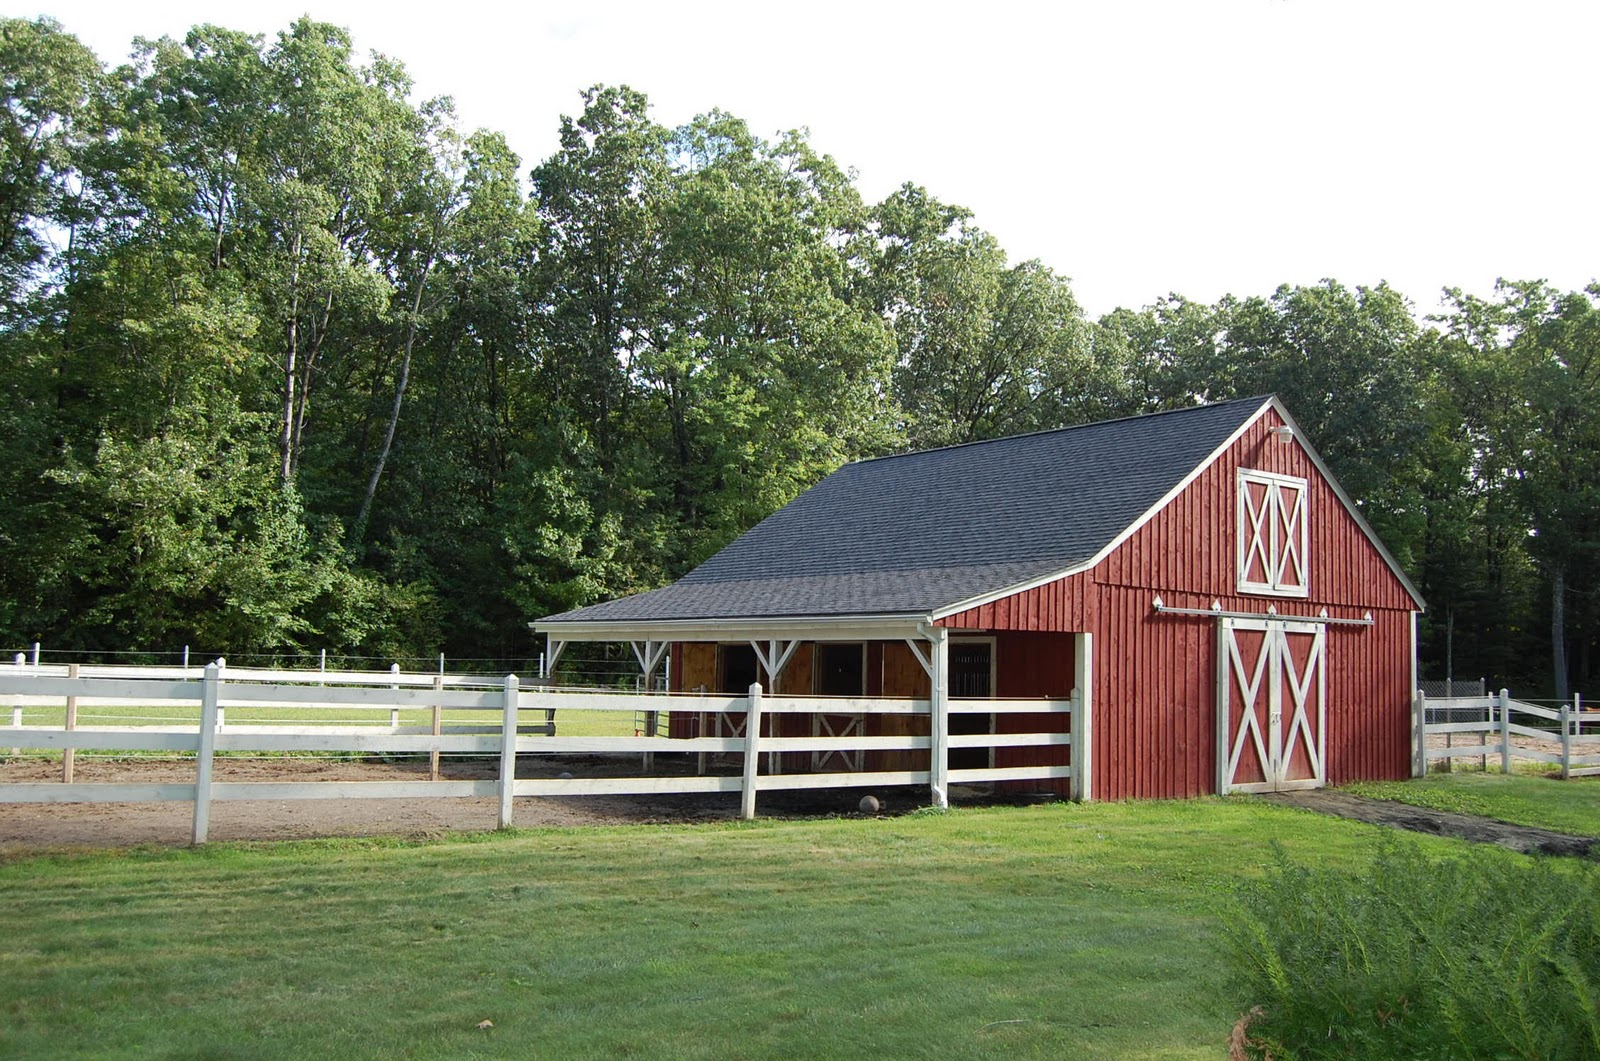 Hartford ct real estate for sale horse properties for for Barn homes for sale in ct